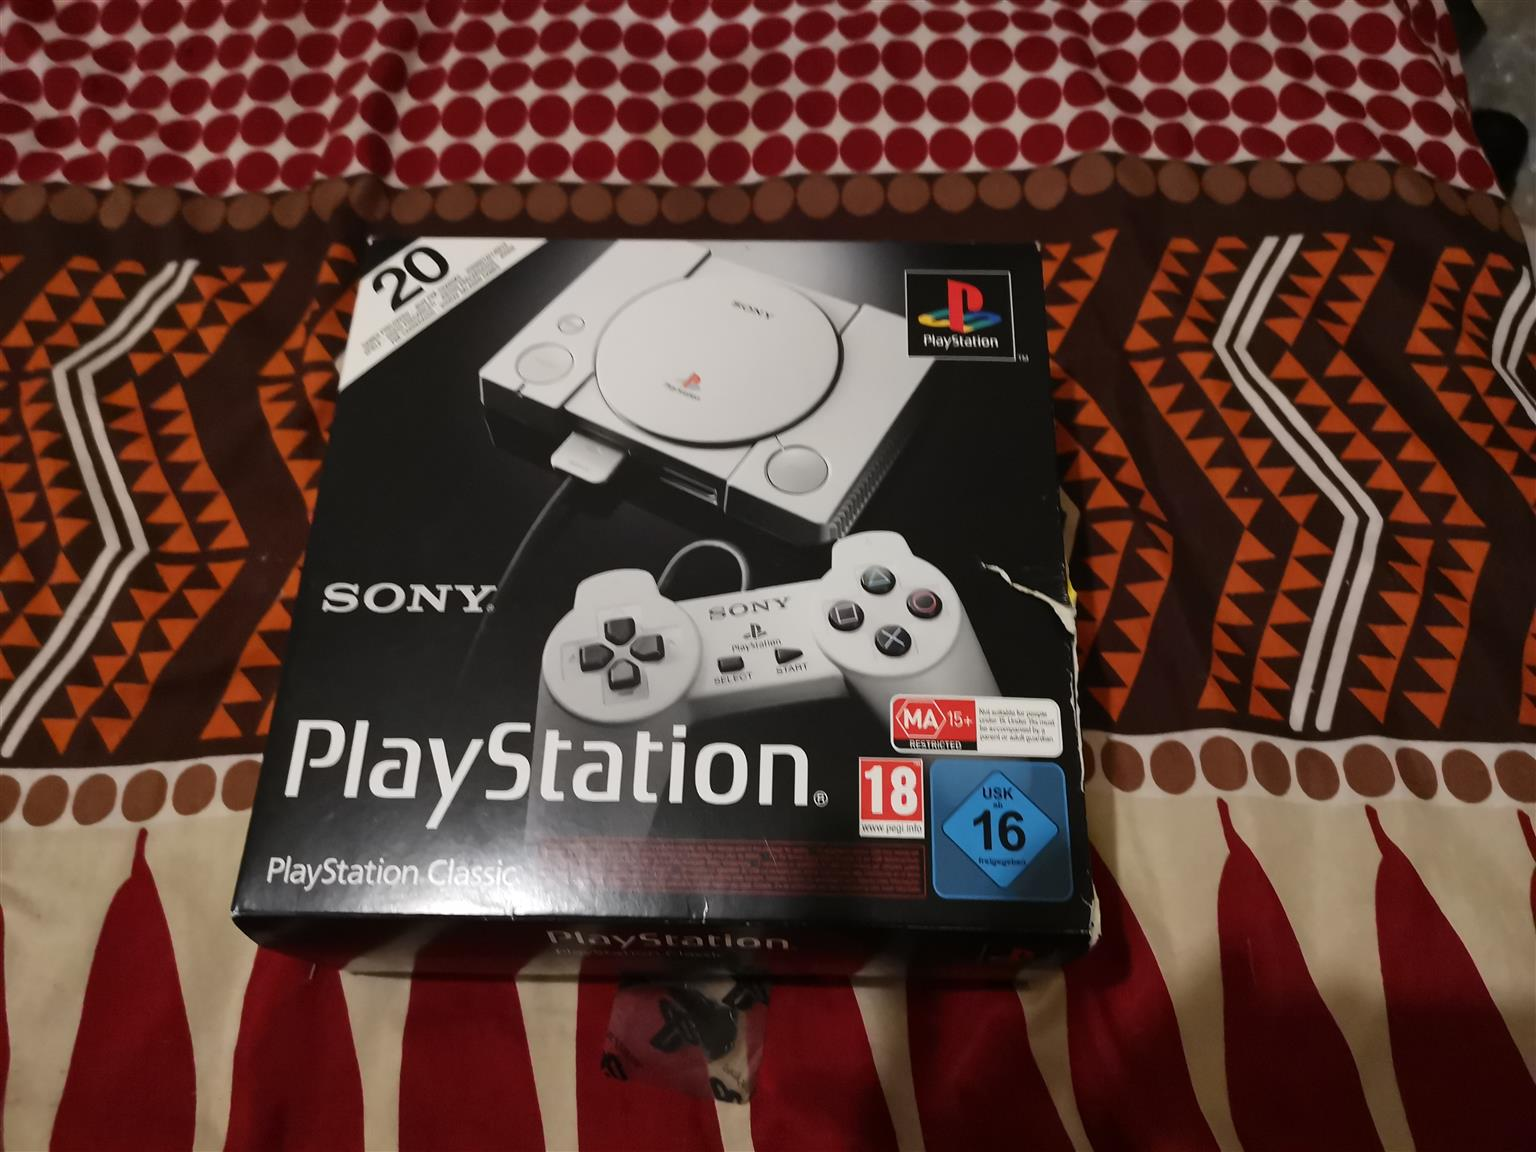 Playstation classic Ps1